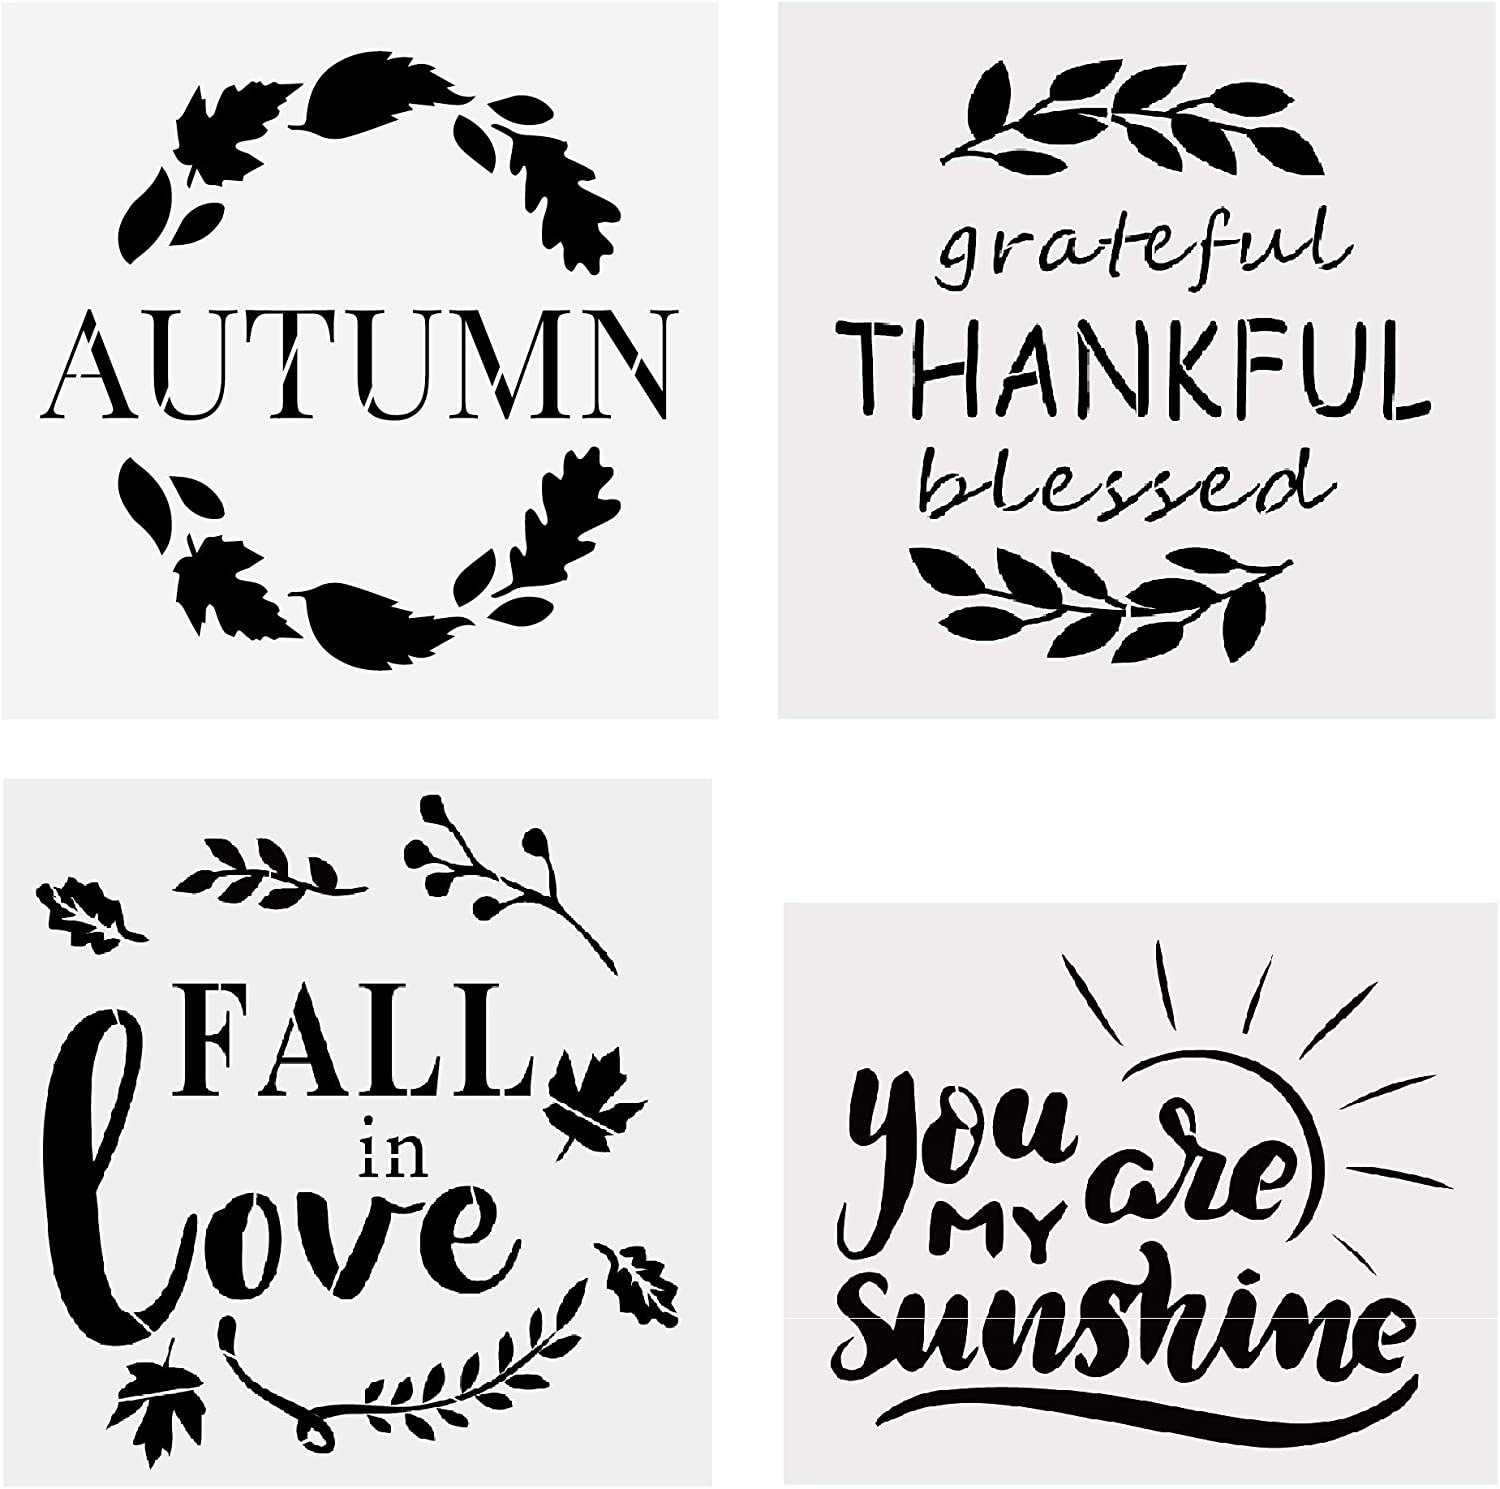 4 Pcs Autumn Fall in Love Thanksgiving You are My Sunshine Stencils for Painting on The Wood, Wall, Paint Autumn Wood Sign Stencil for Front Door, Perfect Fall Decor for Your Home